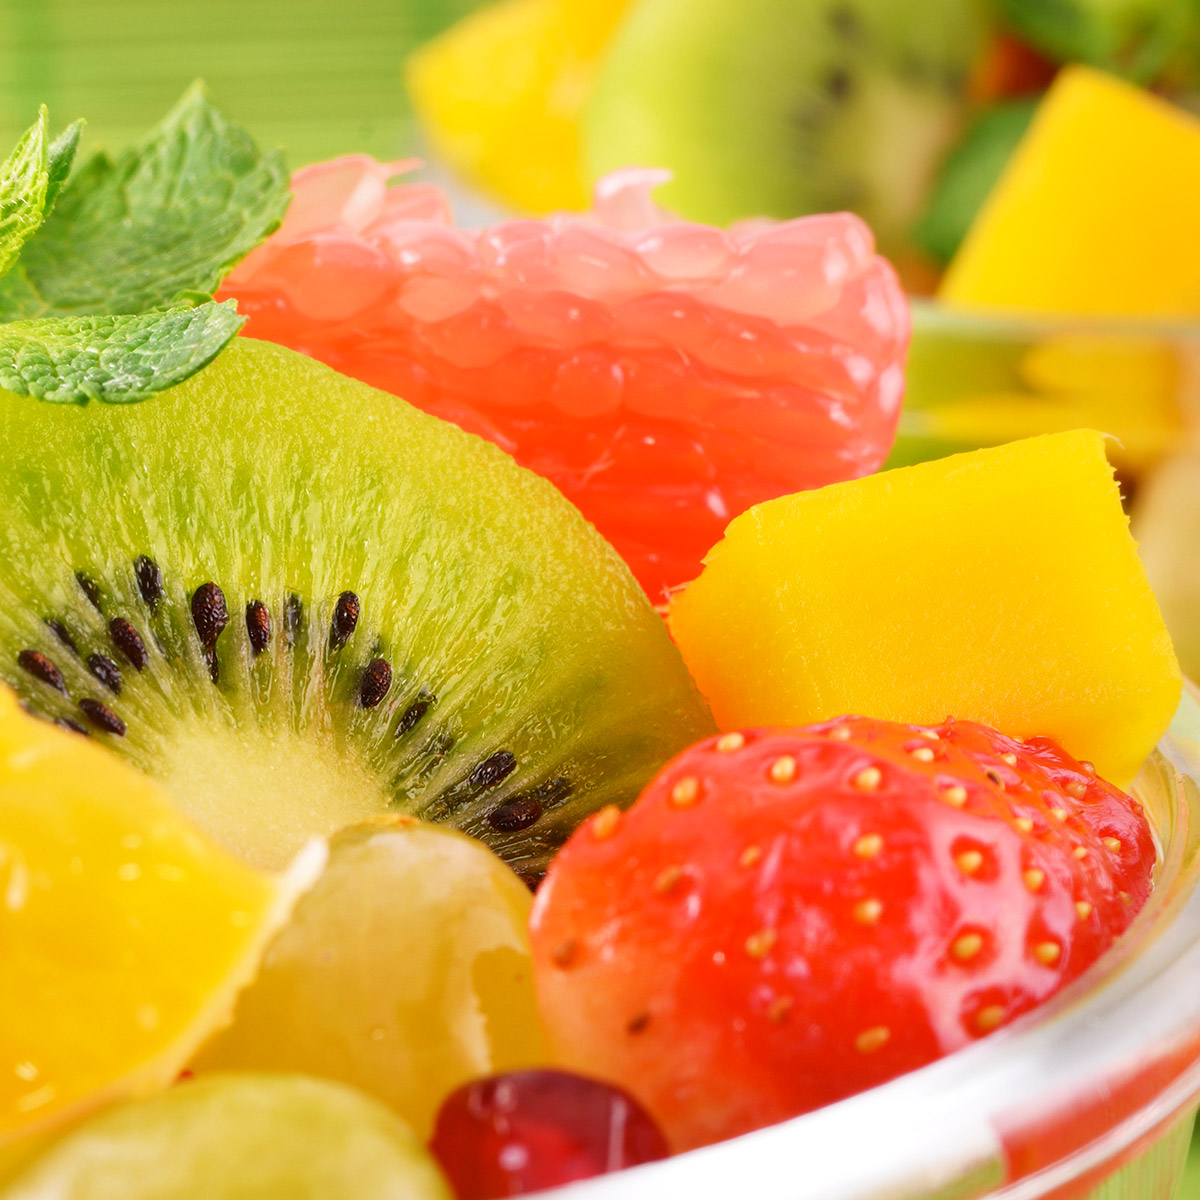 Special Late Harvest Food suggestion - Fruit Salad